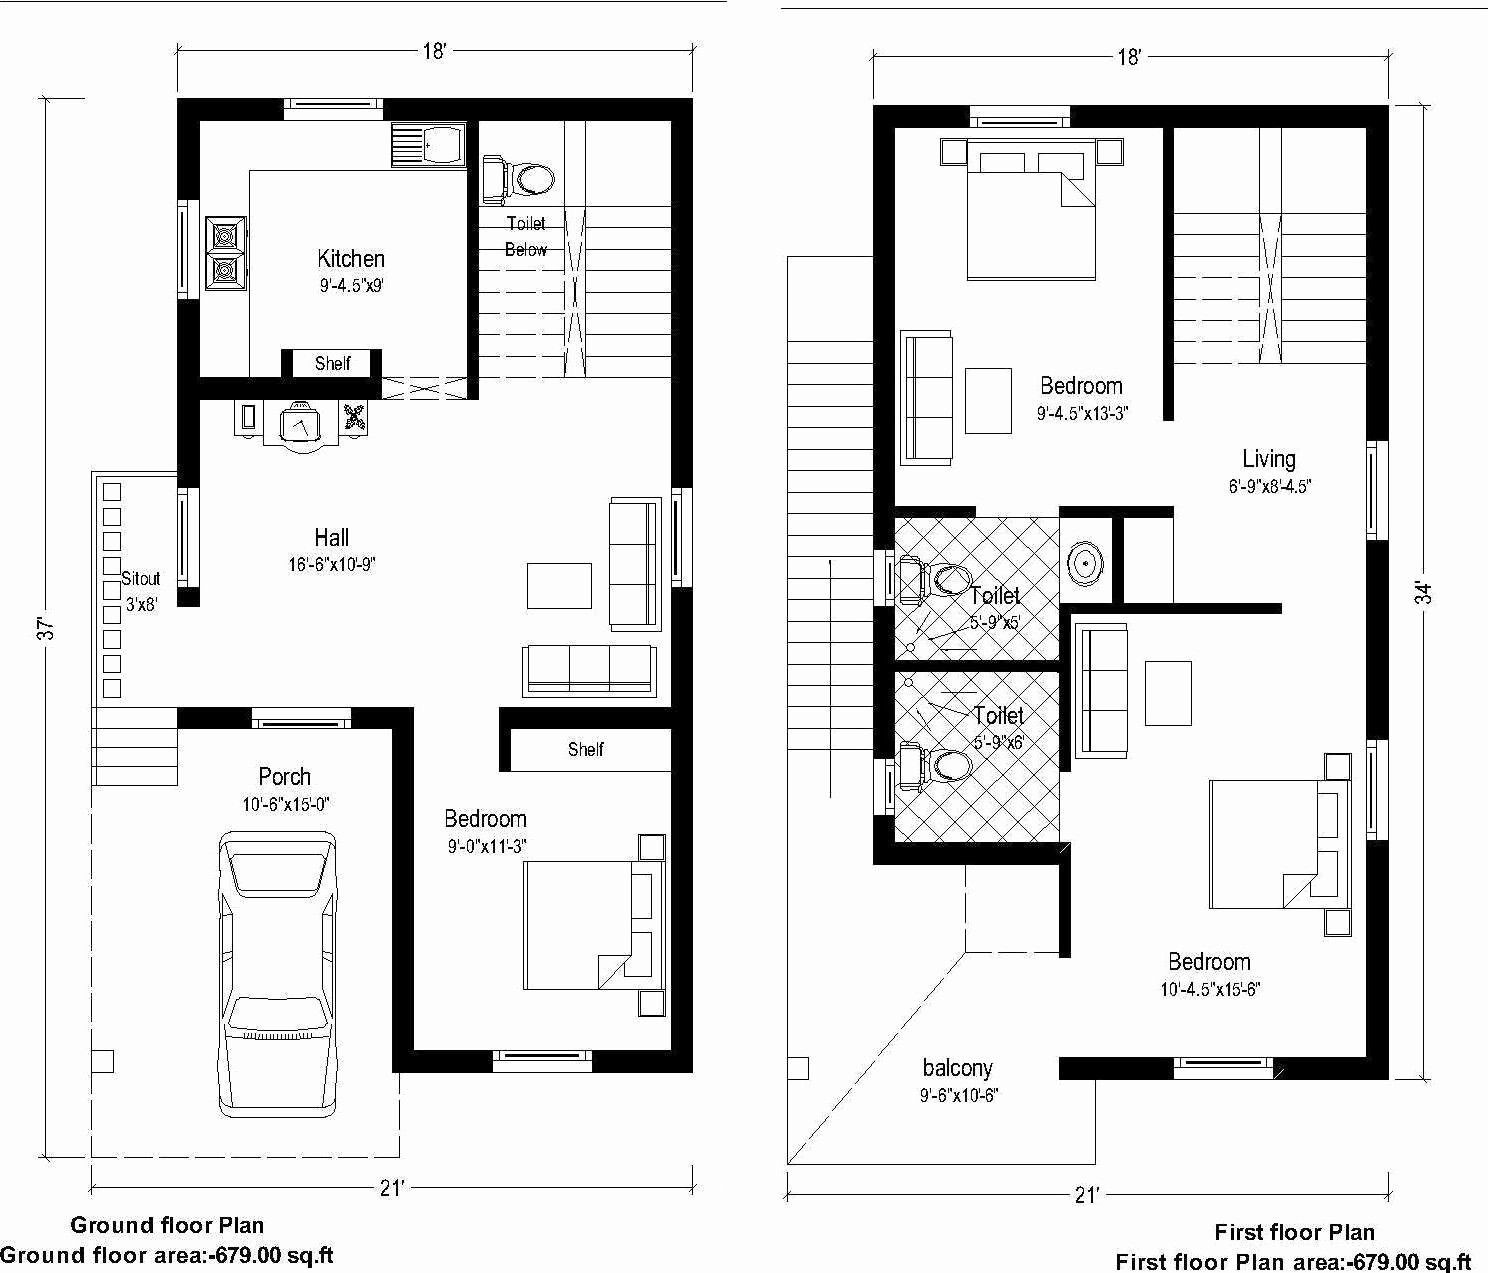 19 Lovely House Plan For 20x Site Floor Plans Designs Gallery Bright 50 X 20x40 House Plans Duplex House Plans House Layout Plans